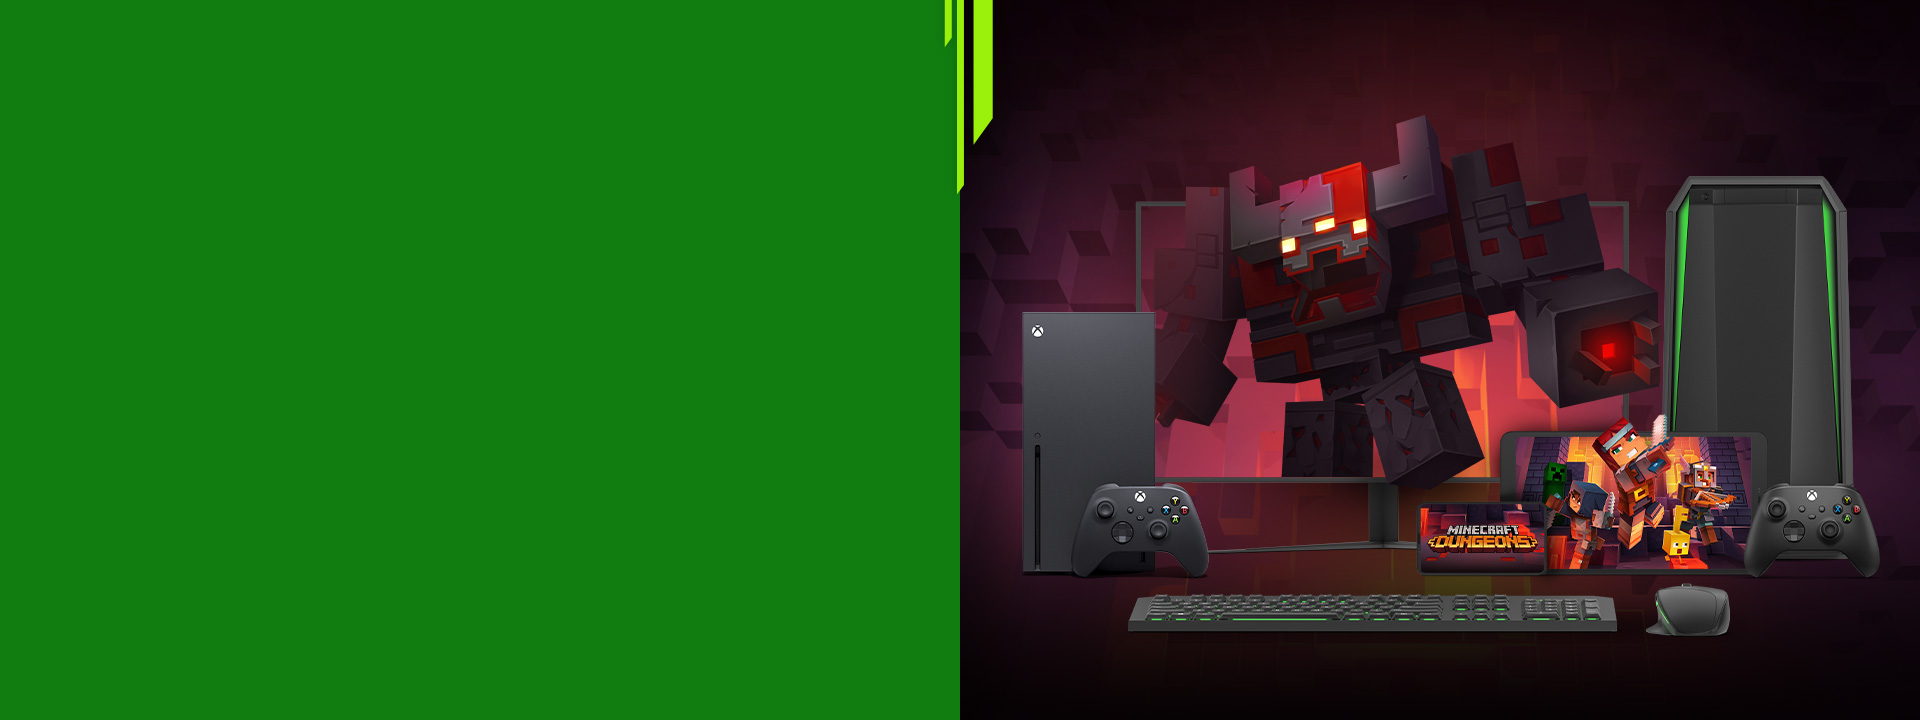 Minecraft Dungeons. A redstone monstrosity looms over adventurers escaping a PC monitor, tablet and mobile device. An Xbox SeriesX and PC rest on either side.